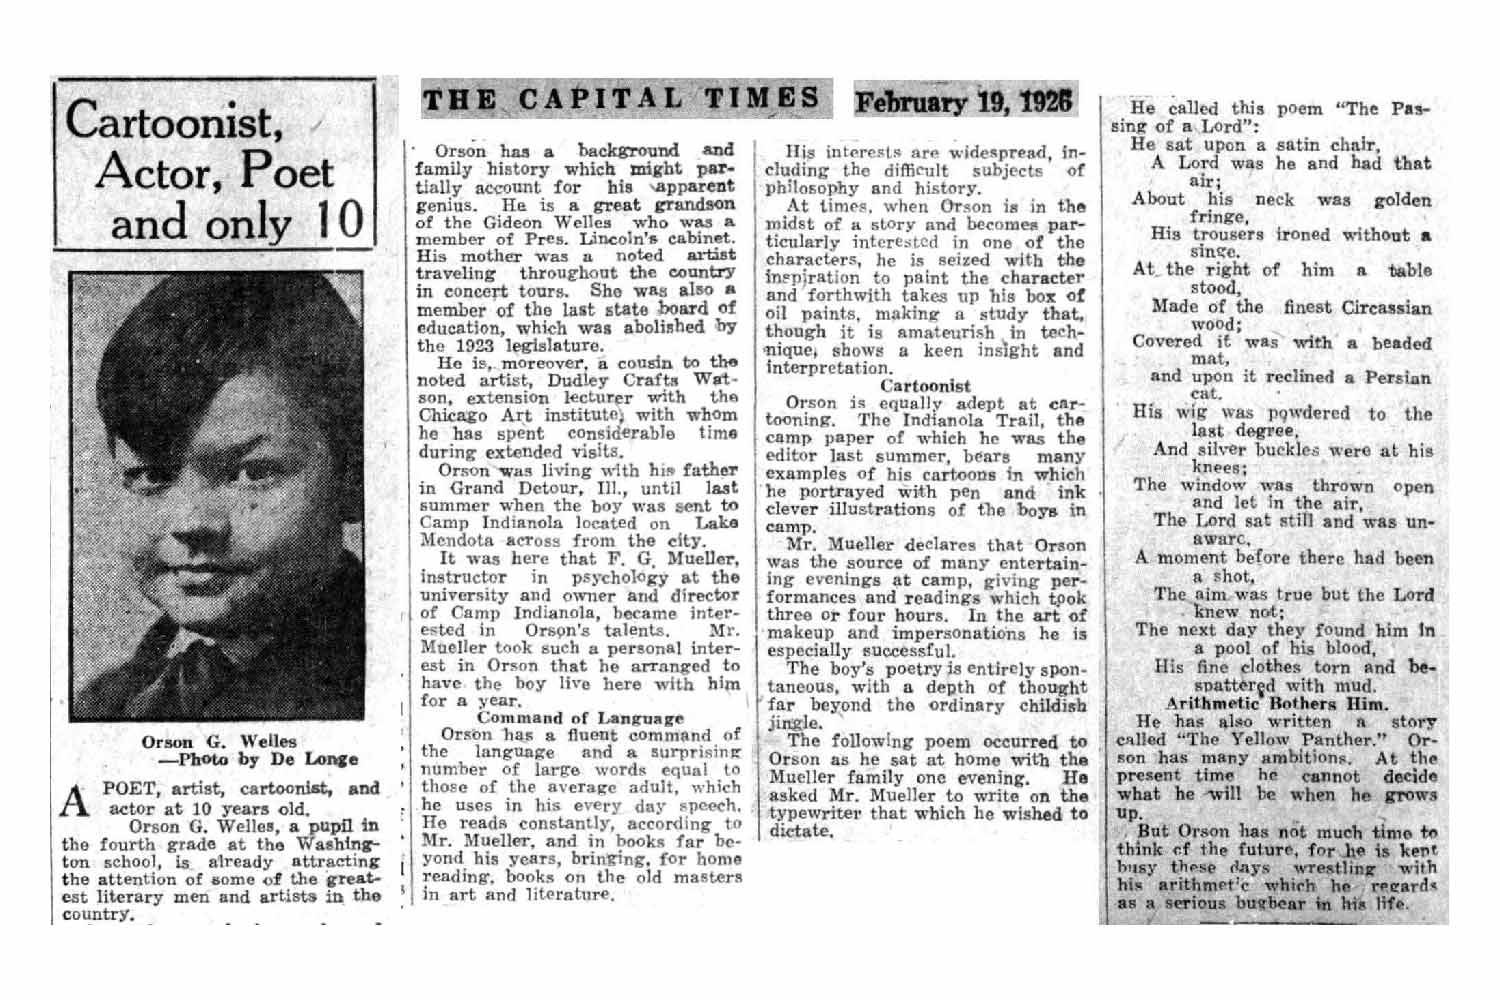 Orson Welles in The Capital Times in 1926